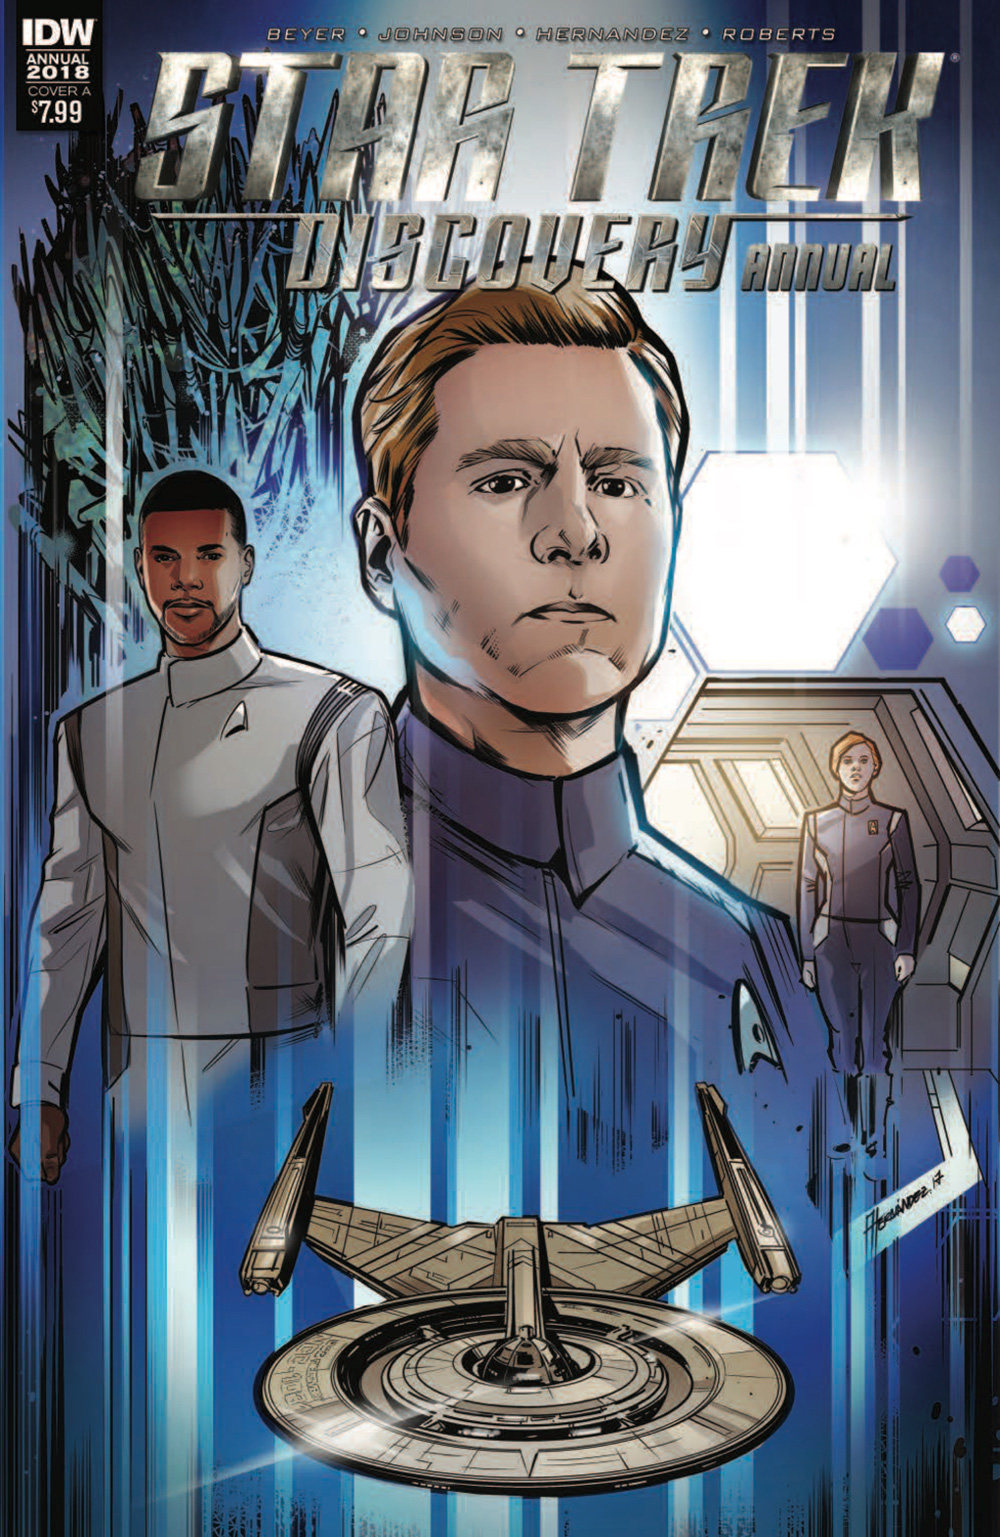 Cover art for this comic: sketches of Stamets, Culber and Tilly.